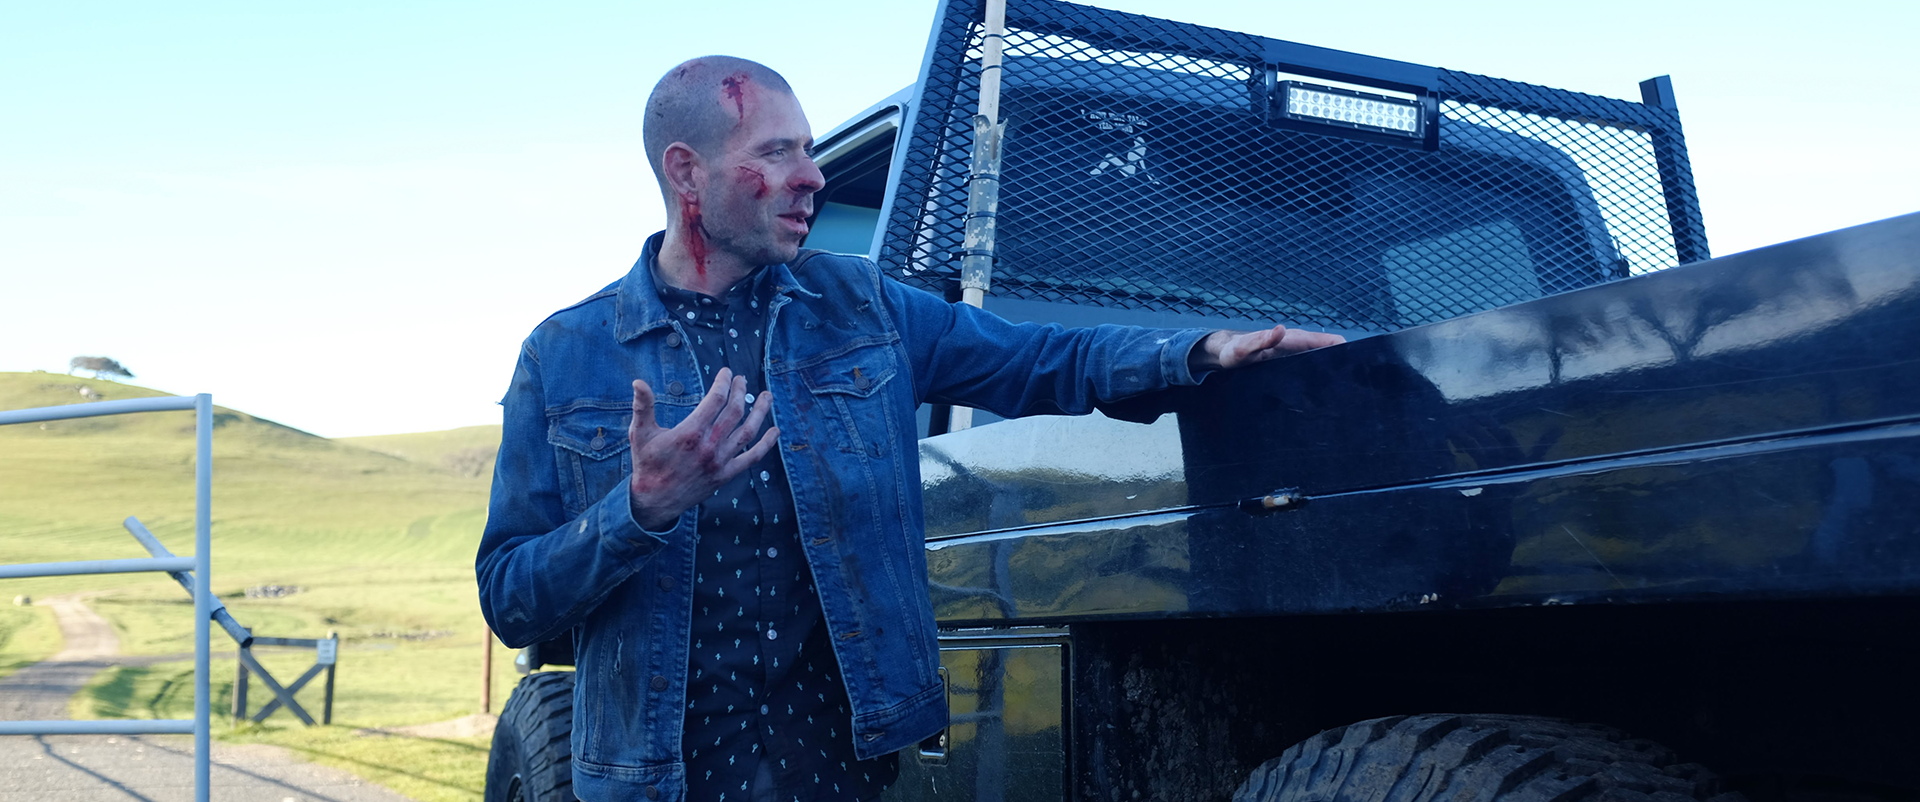 FarCry5_BTS_09_1920x802.png